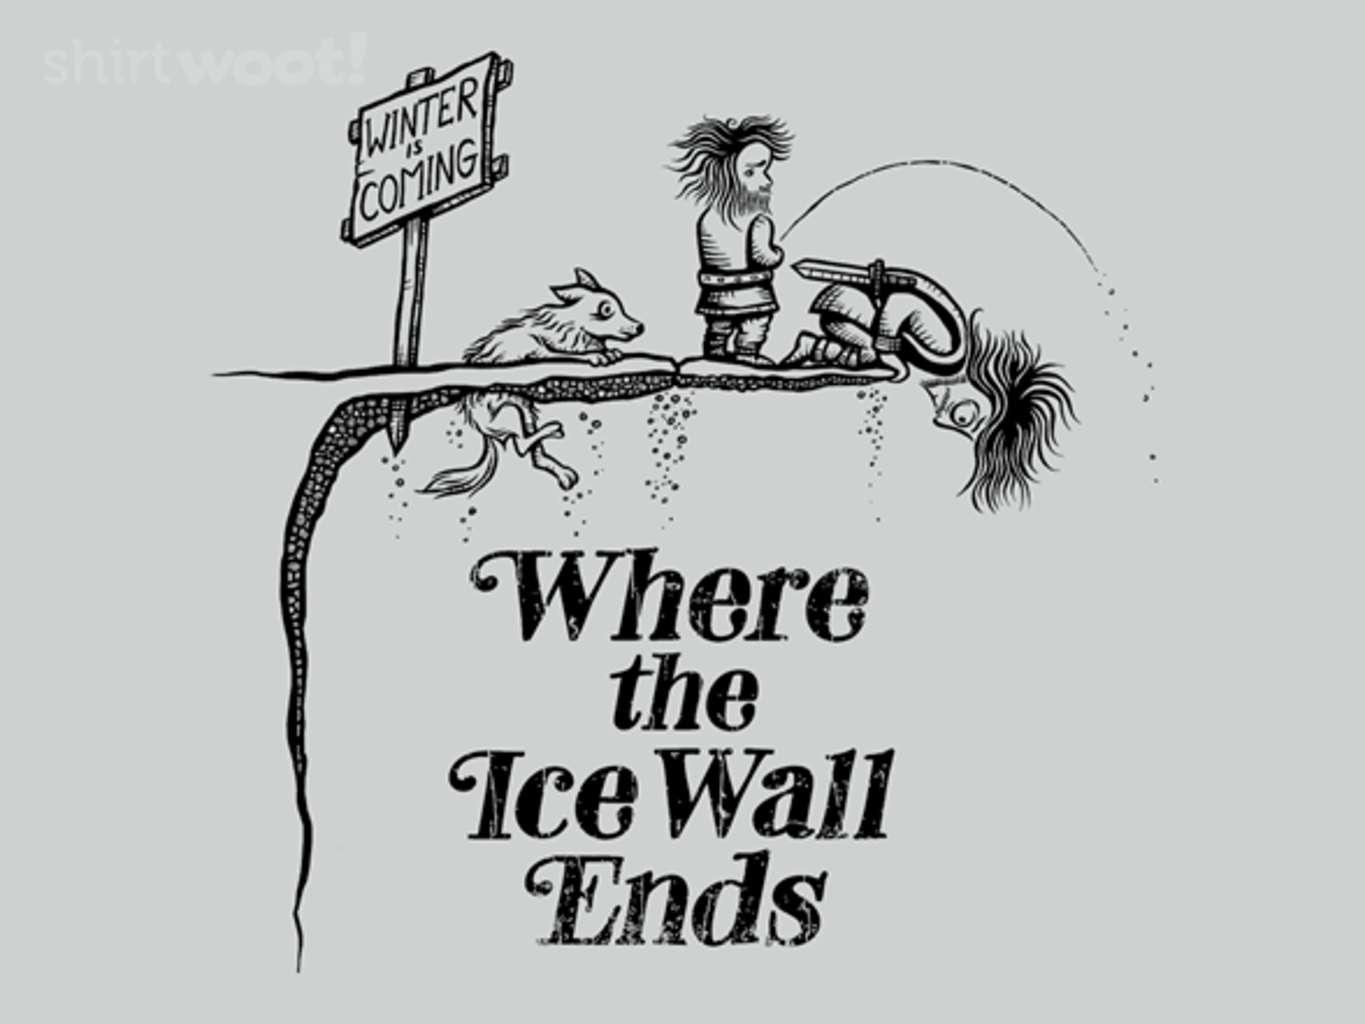 Woot!: Where the Ice Wall Ends